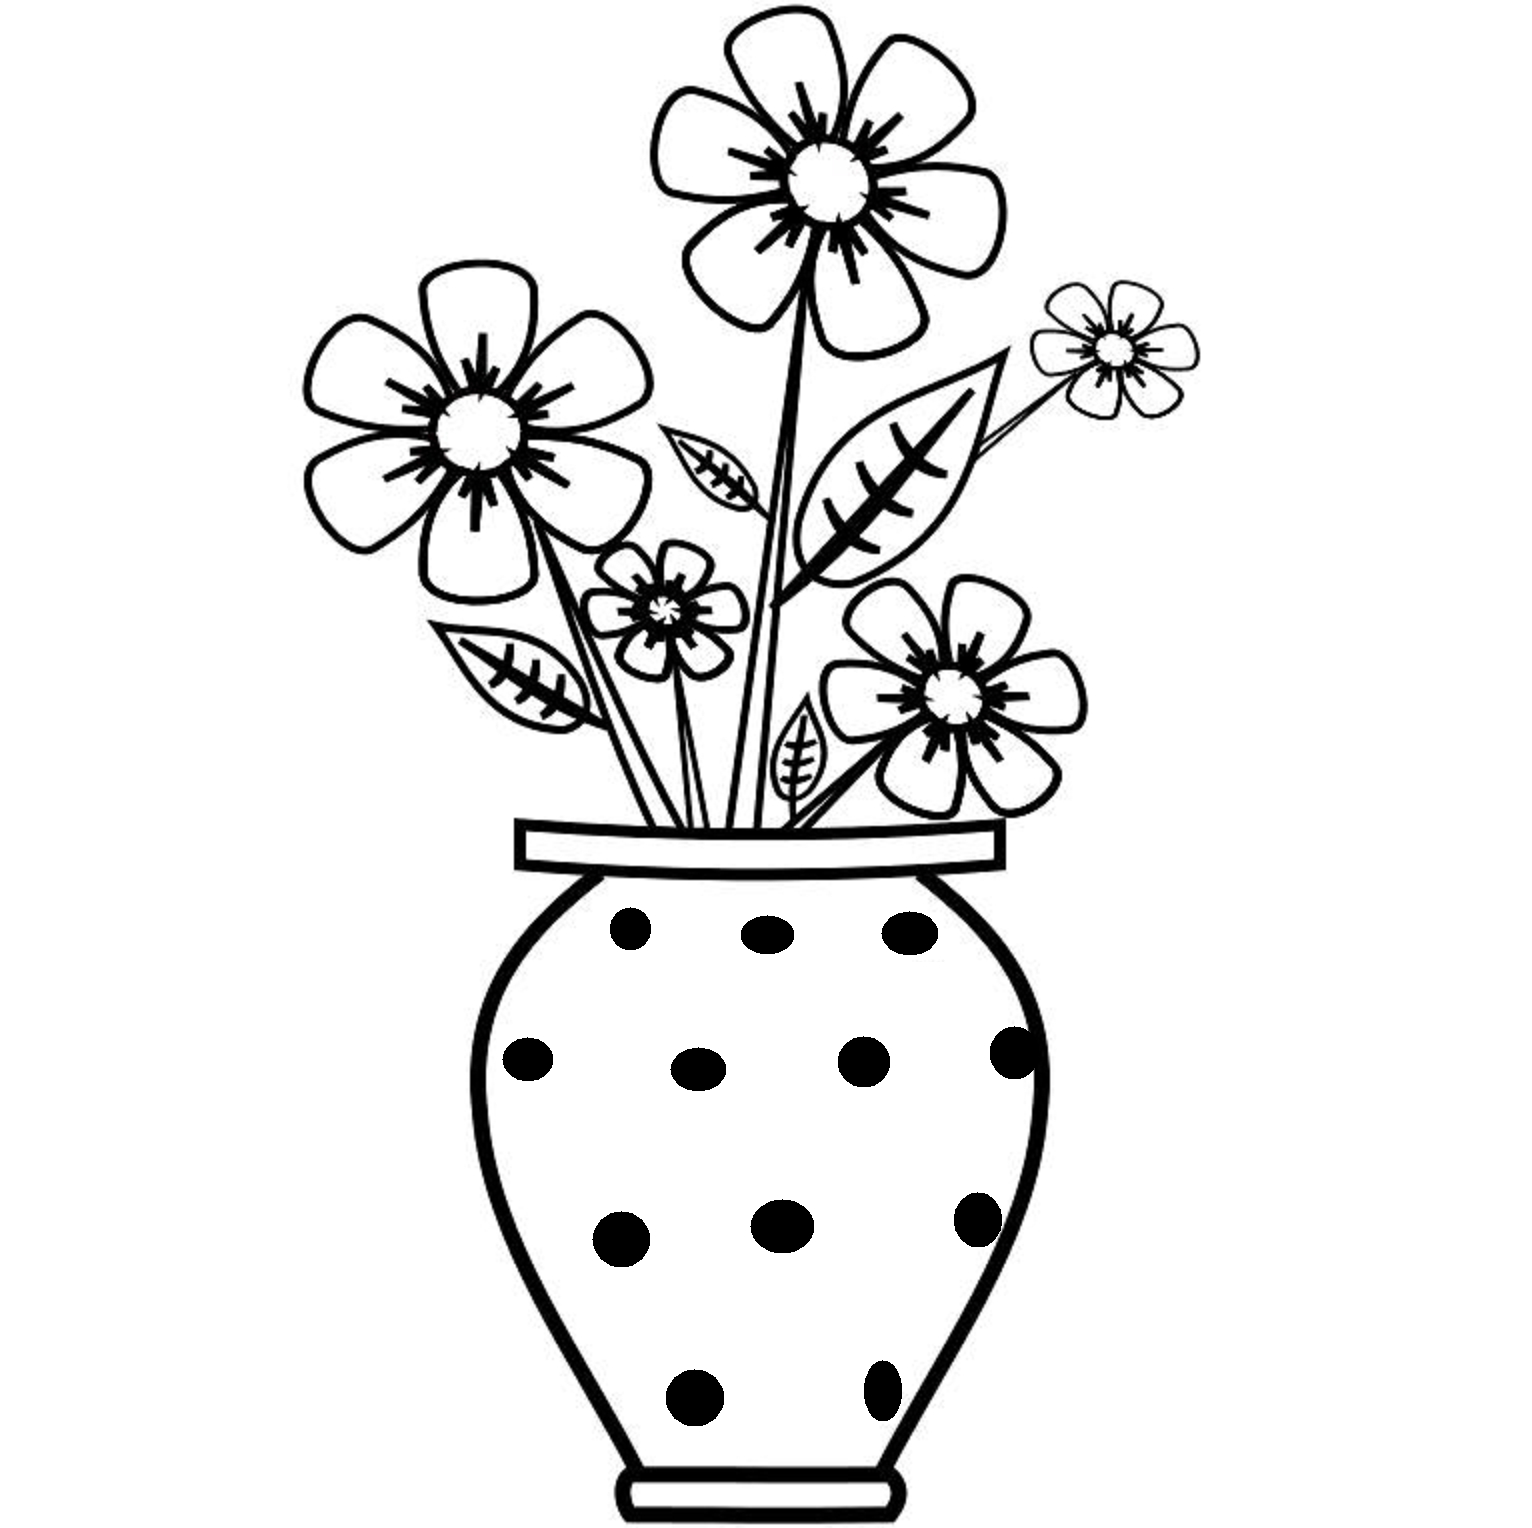 Easy drawing of flower vase flowers in a vase drawing the best easy drawing of flower vase flowers in a vase drawing the best flowers ideas reviewsmspy